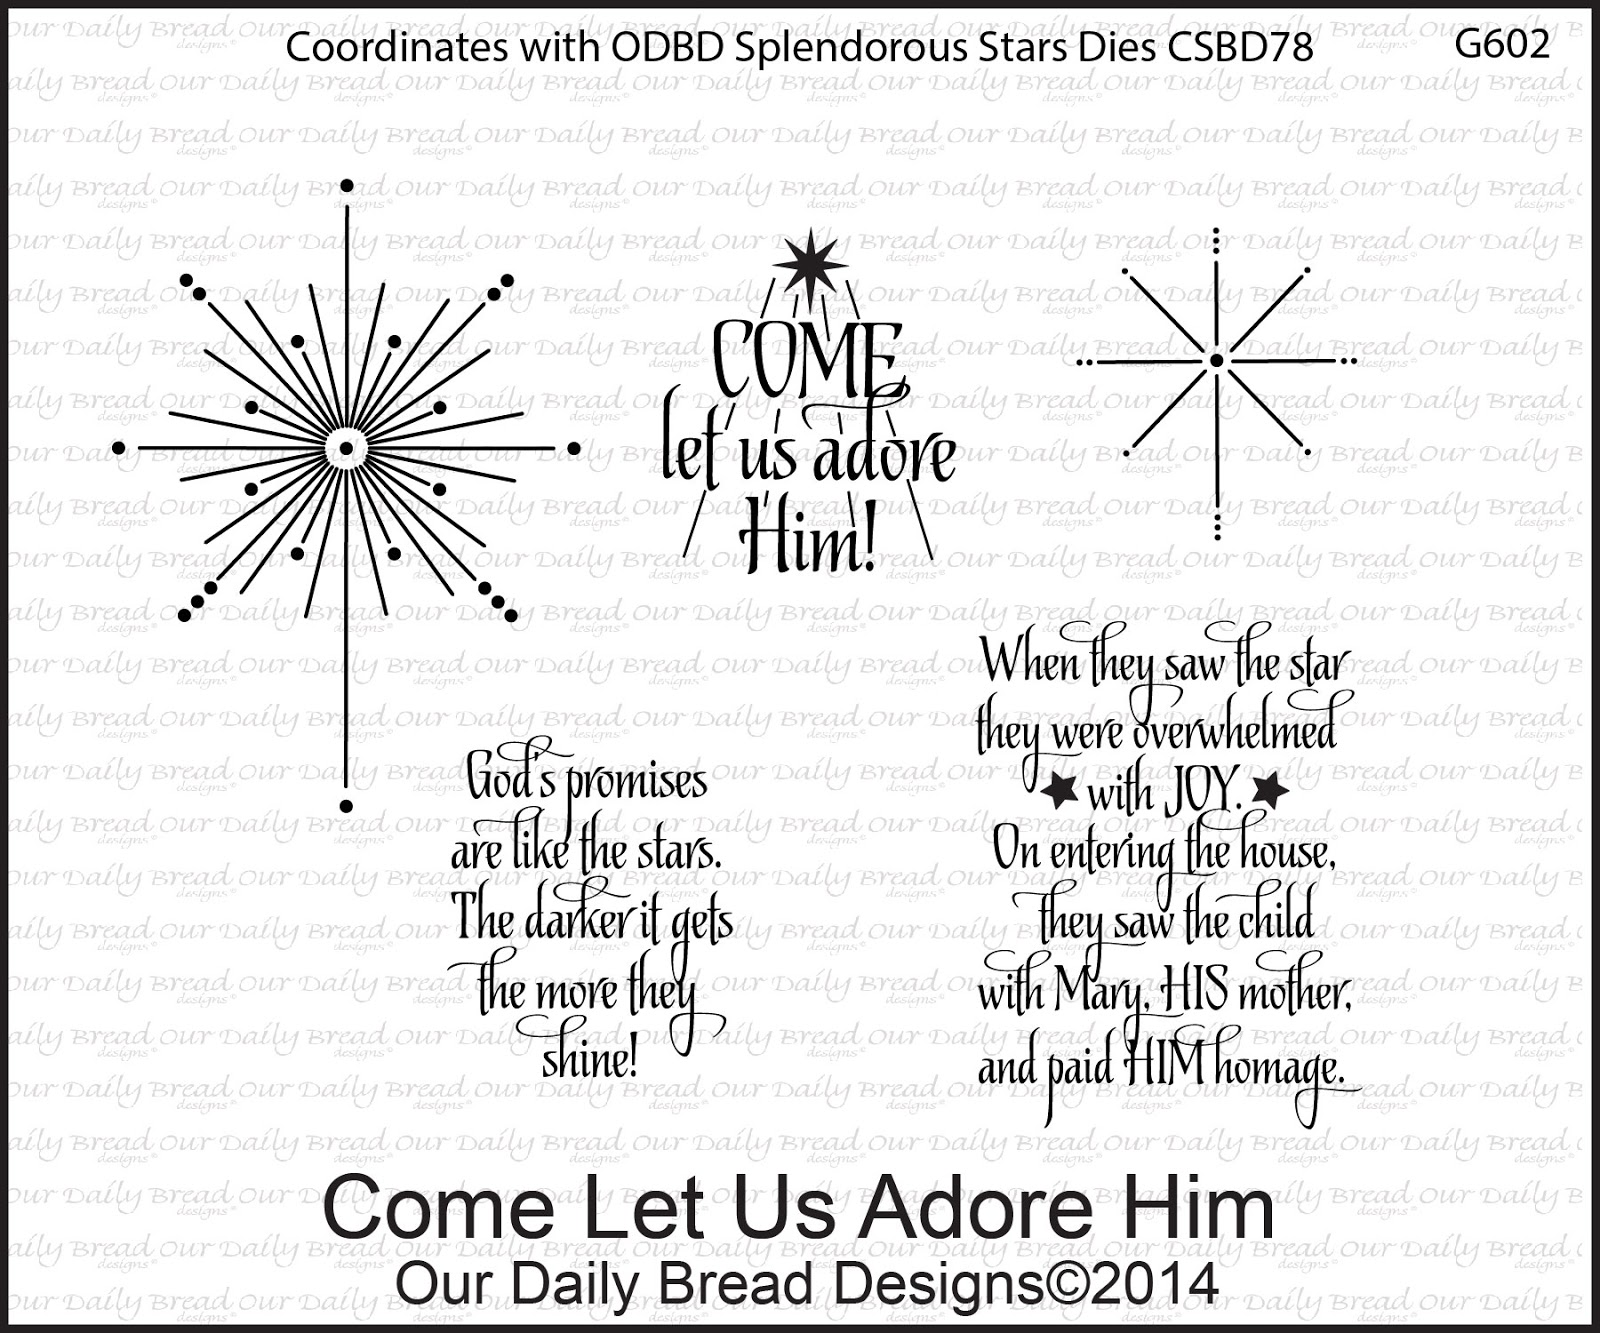 https://www.ourdailybreaddesigns.com/index.php/g602-come-let-us-adore-him.html